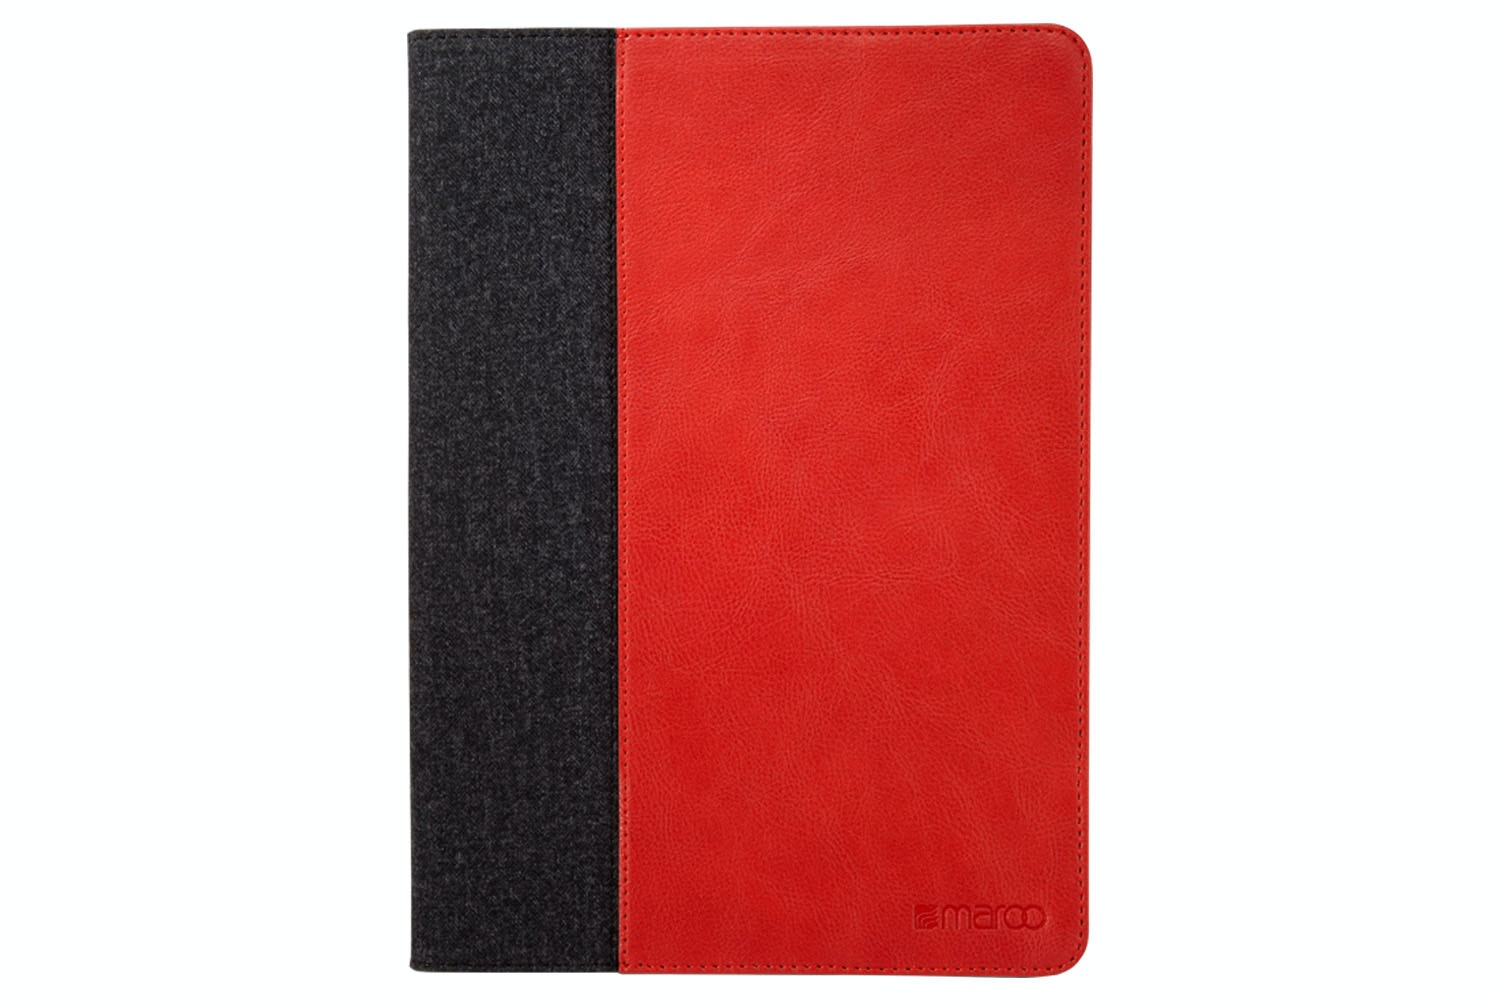 Maroo Executive Folio iPad Air 2 Case | Red